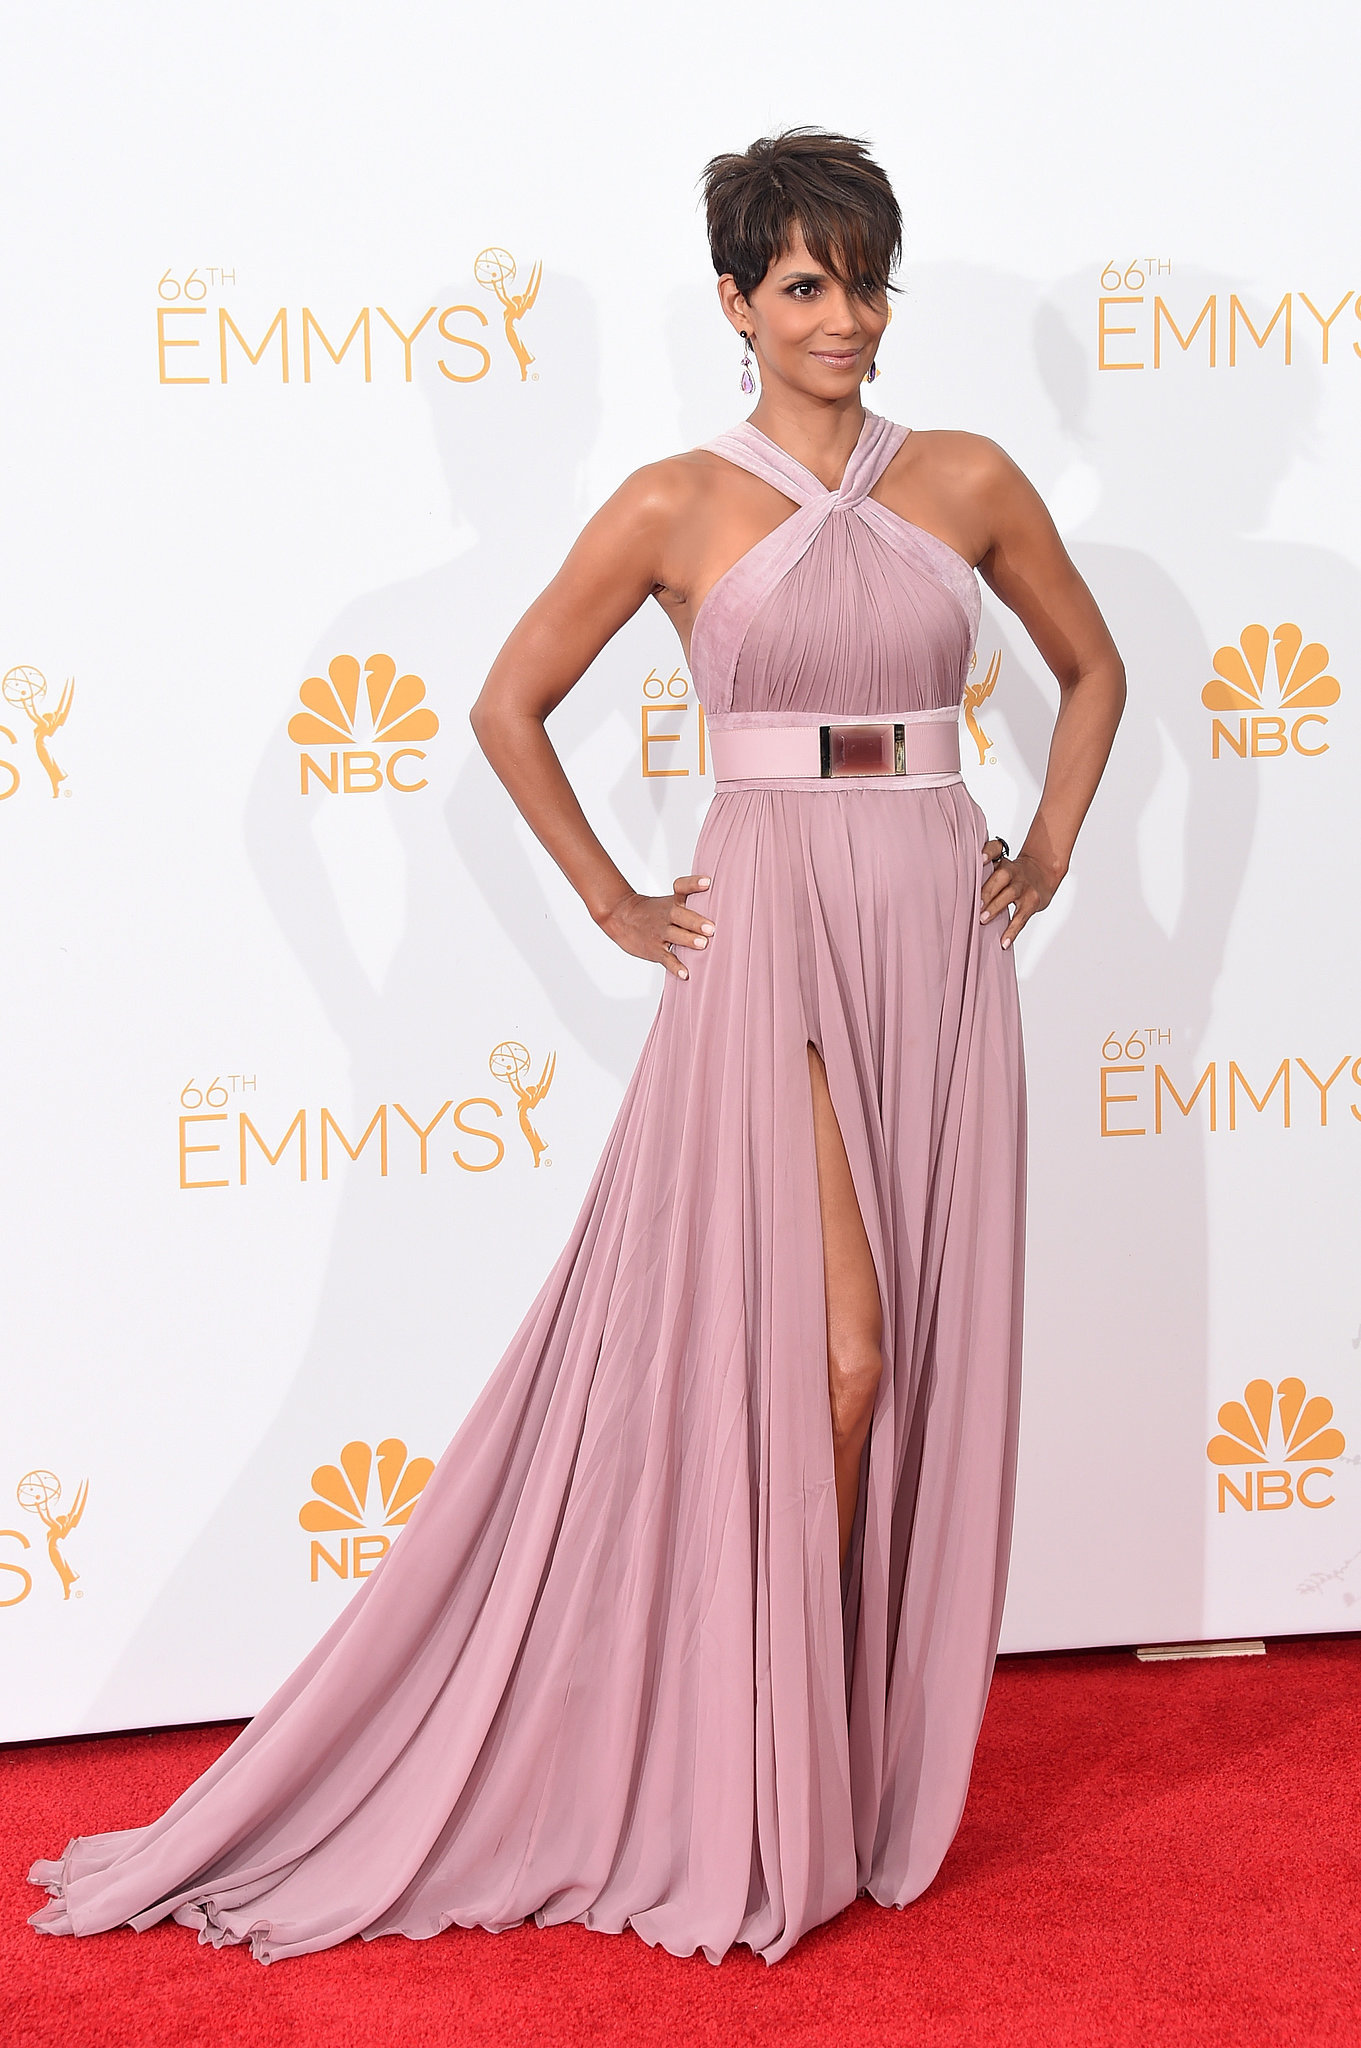 Halle Berry 2014 Emmy Awards Halle Berry In Elie Saab  In At The  2014 Emmy Awards